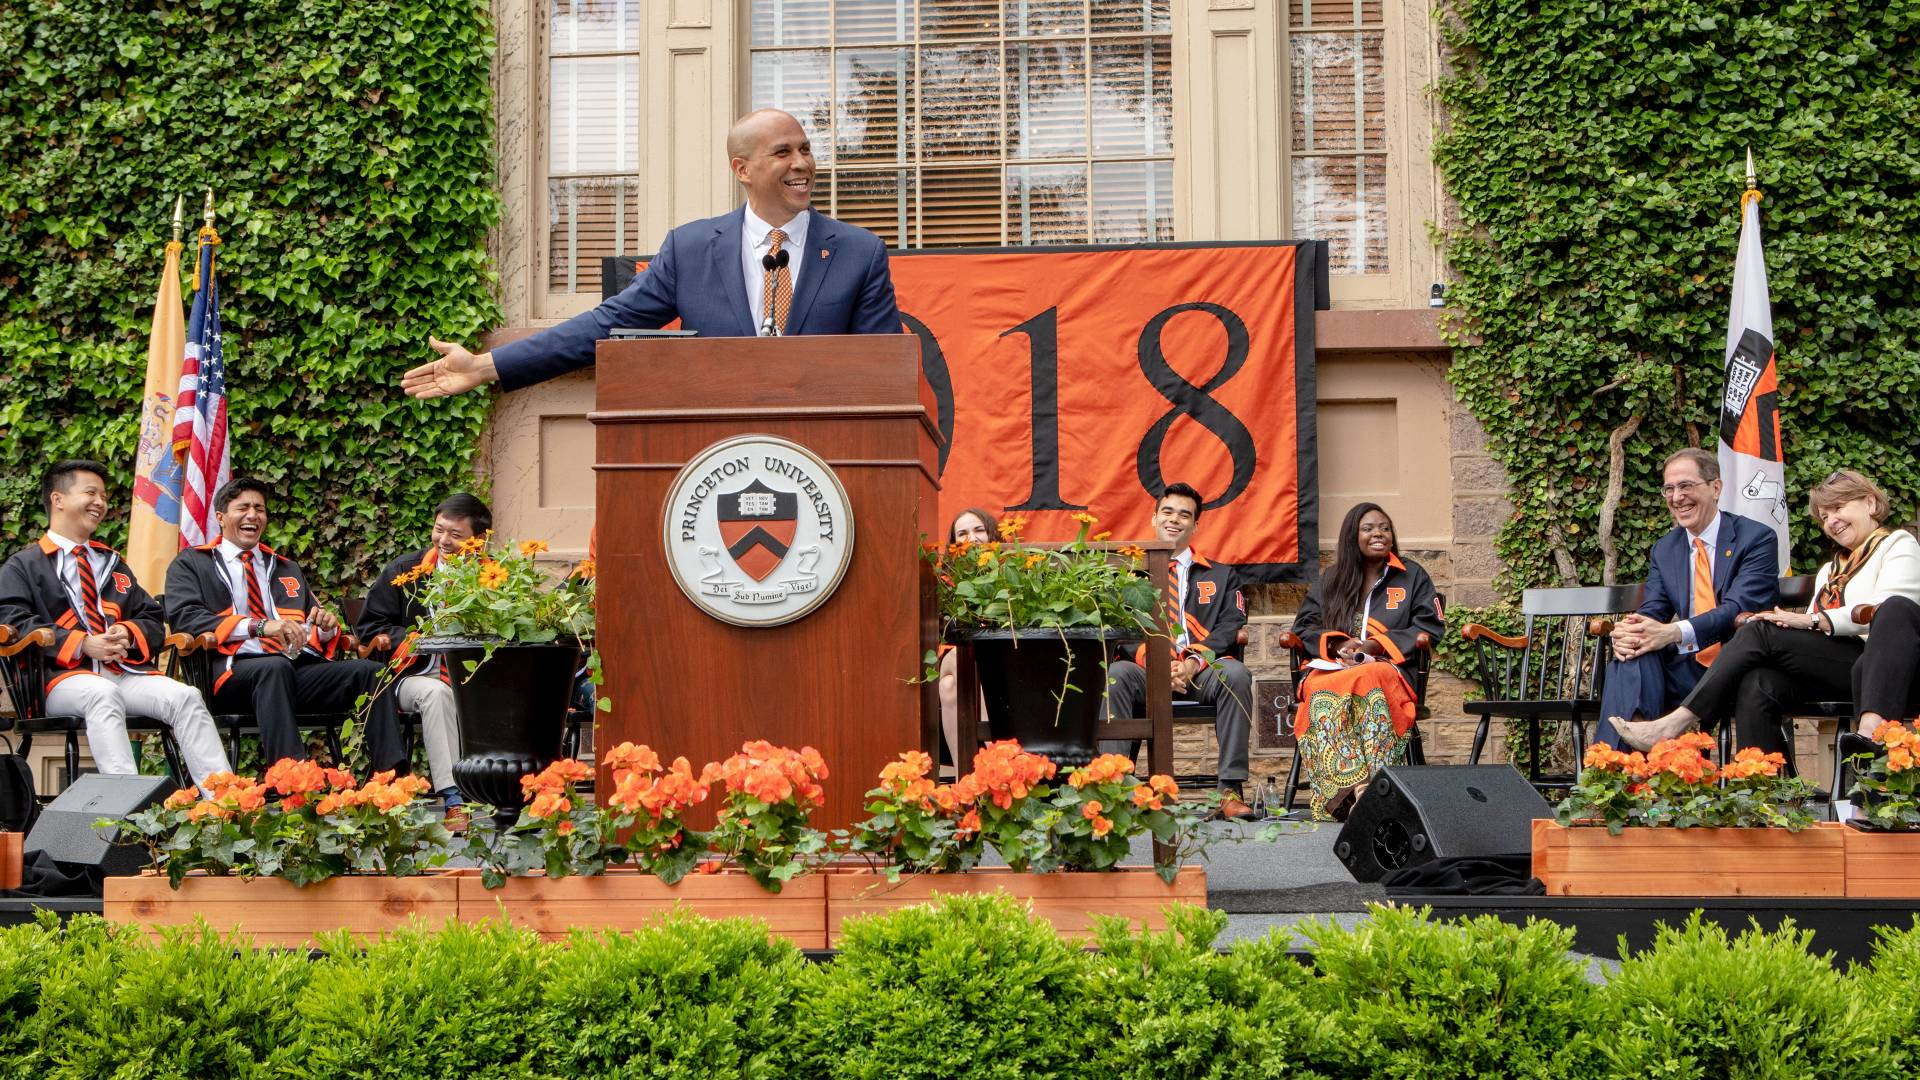 Senator Cory Booker giving speech during Class Day ceremony